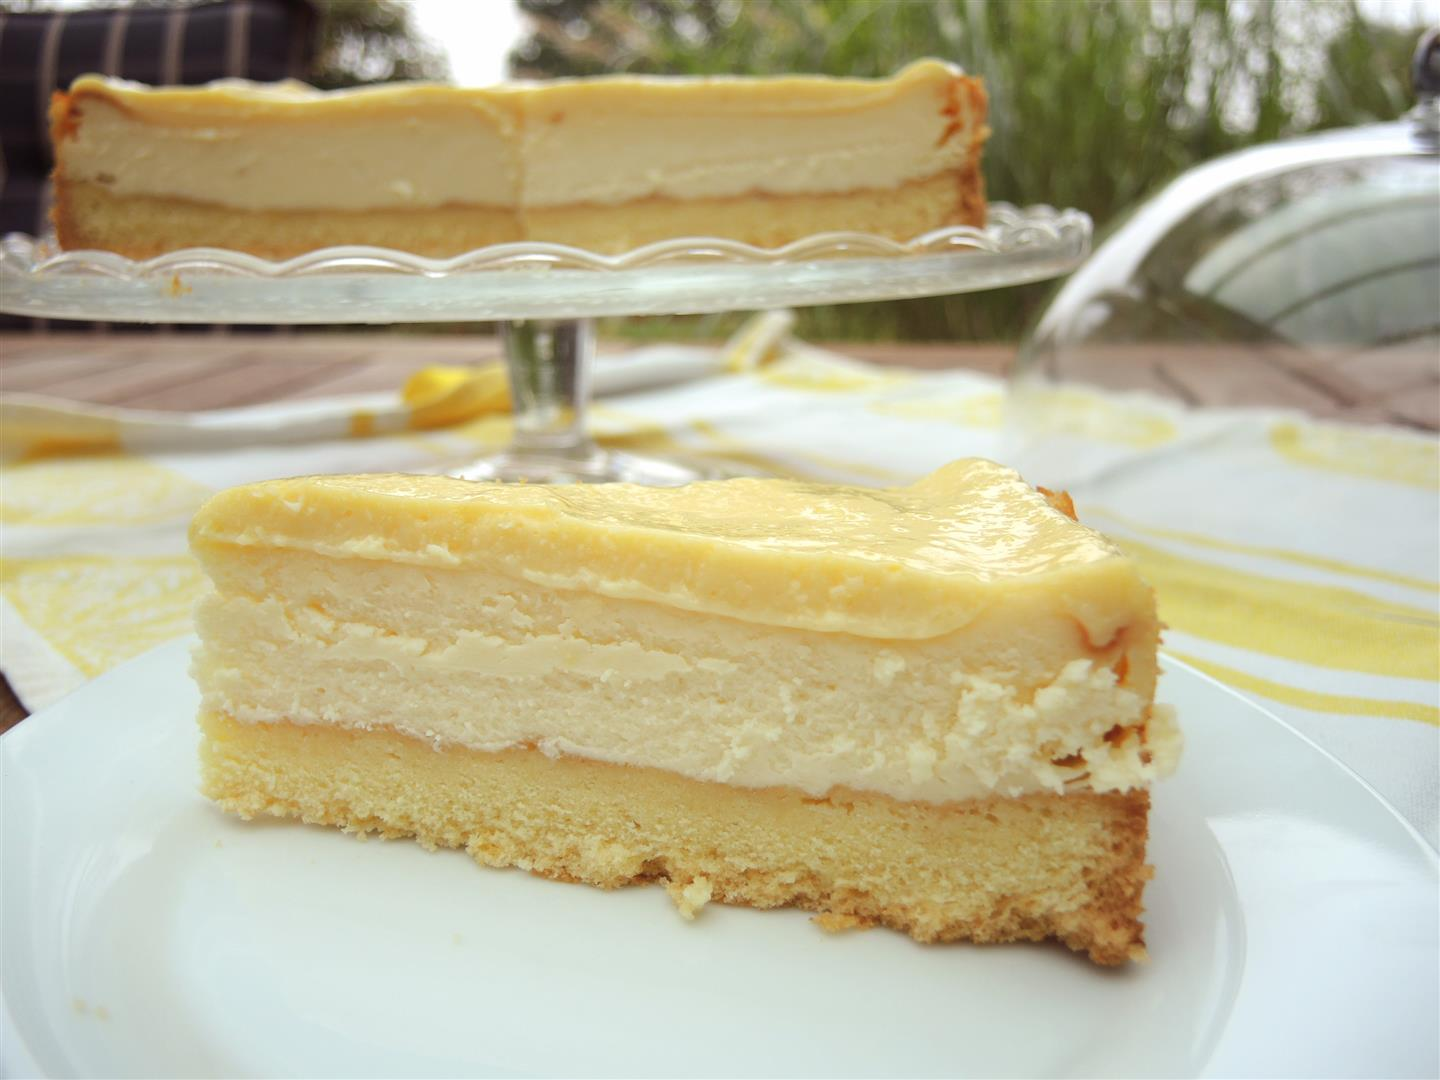 Lemon Cheesecake Nach Cynthia Barcomi Chilirosen